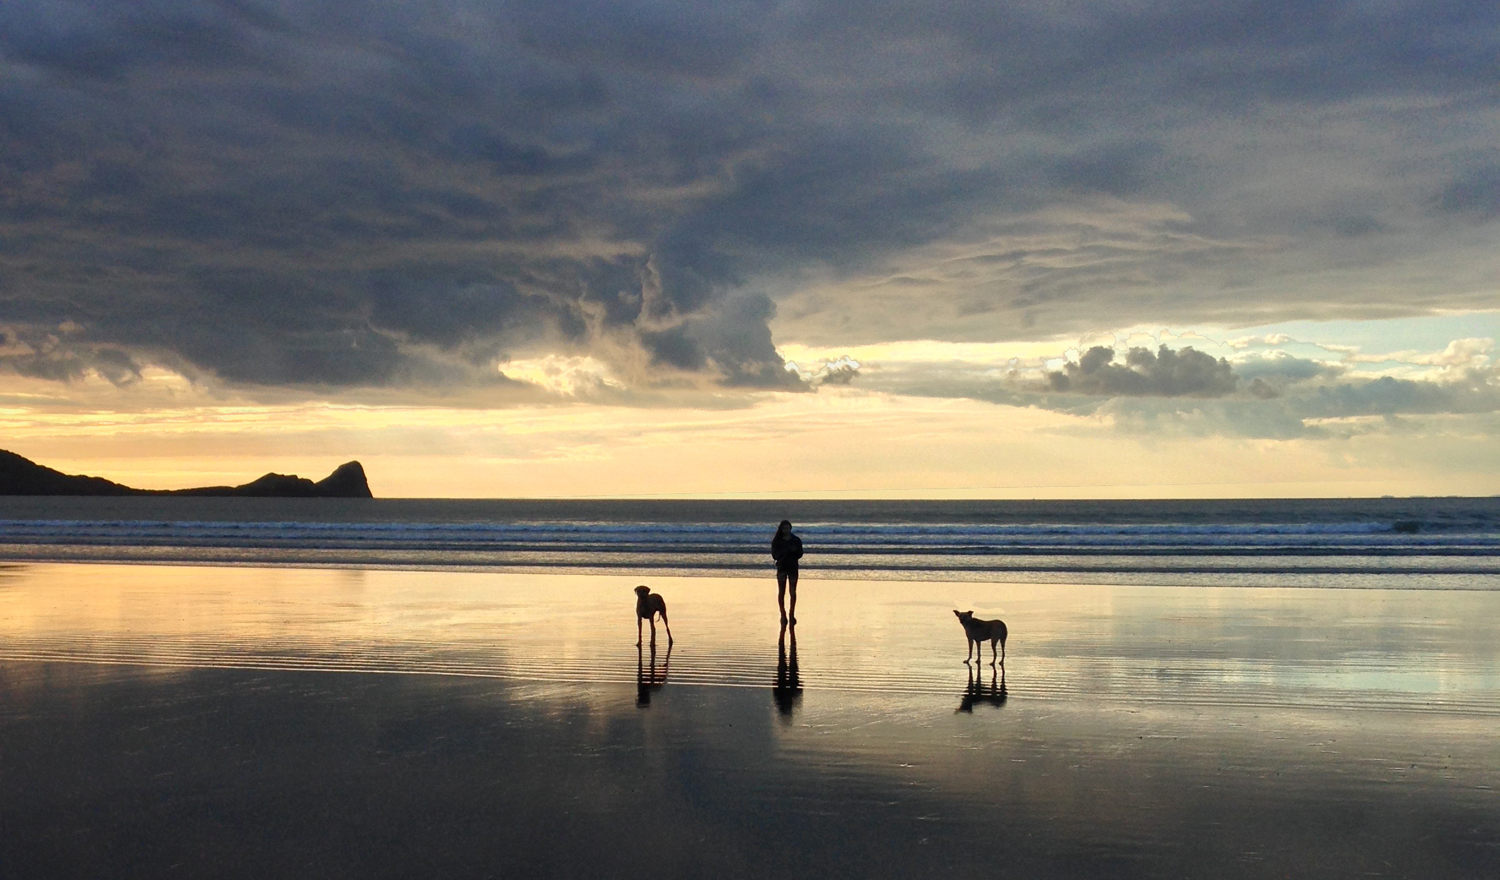 evening-in-the-beach-with-dogs.jpg